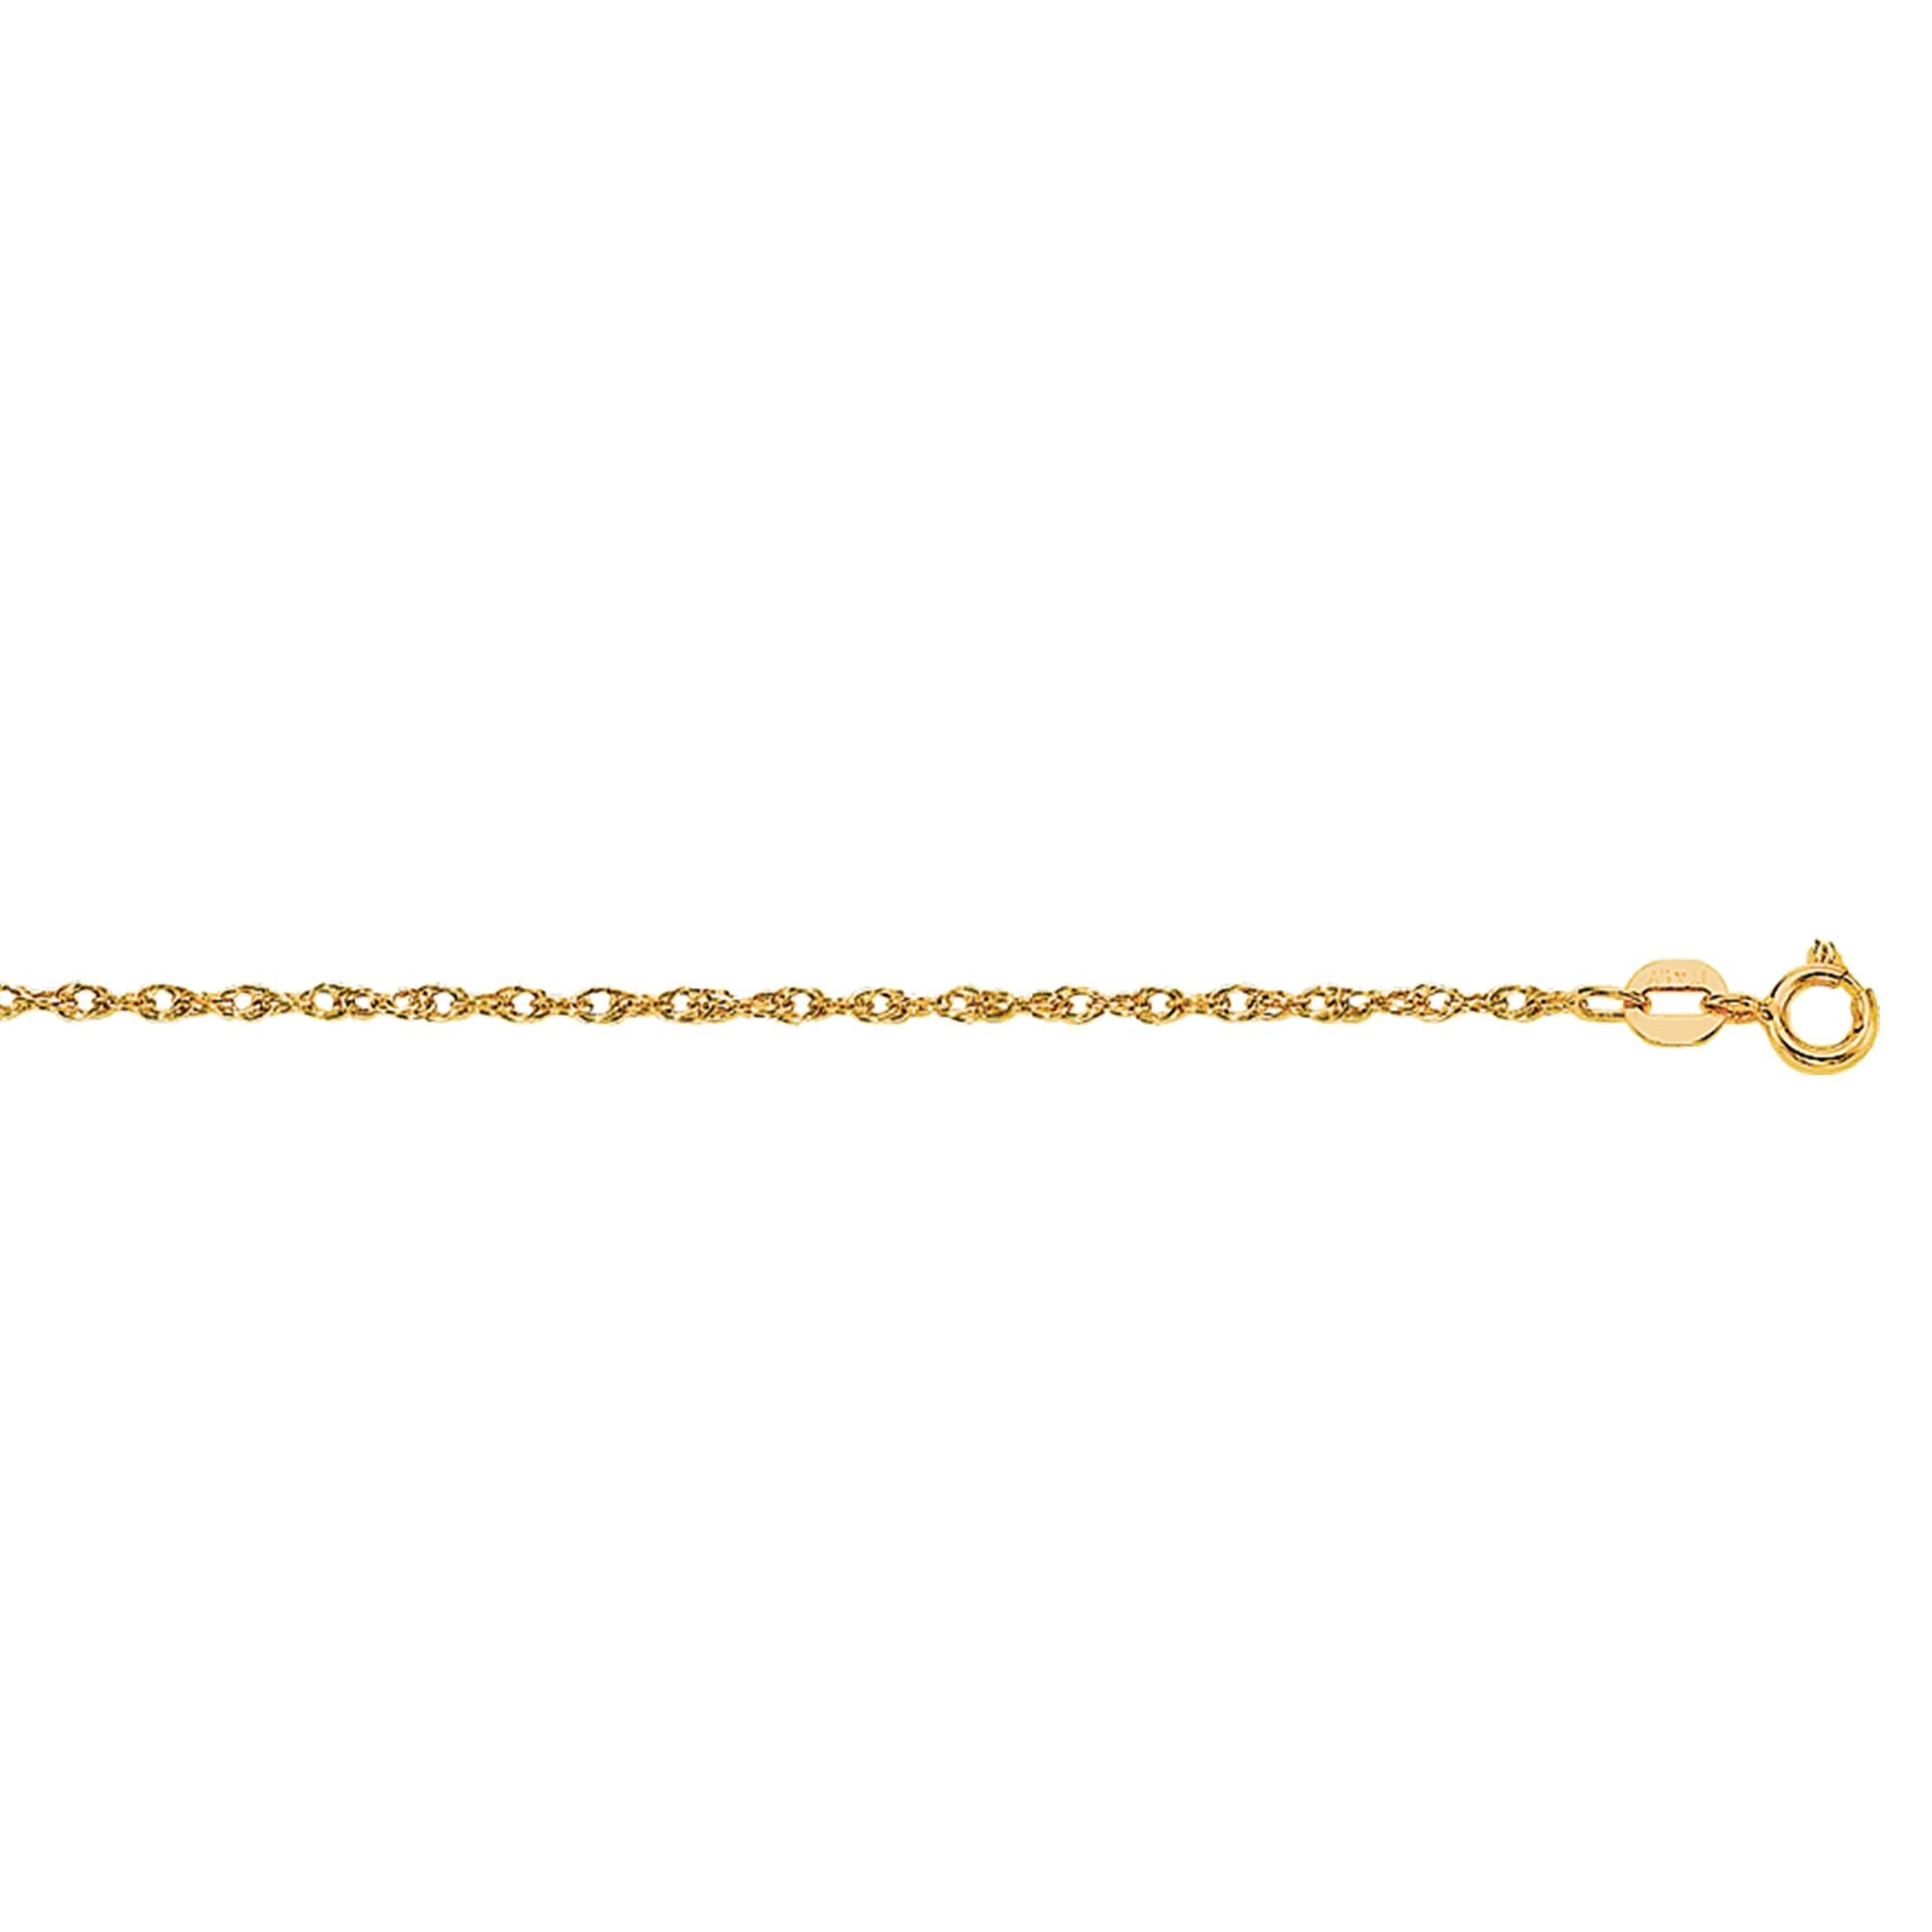 10K Gold .95mm Machine Rope Chain Carded